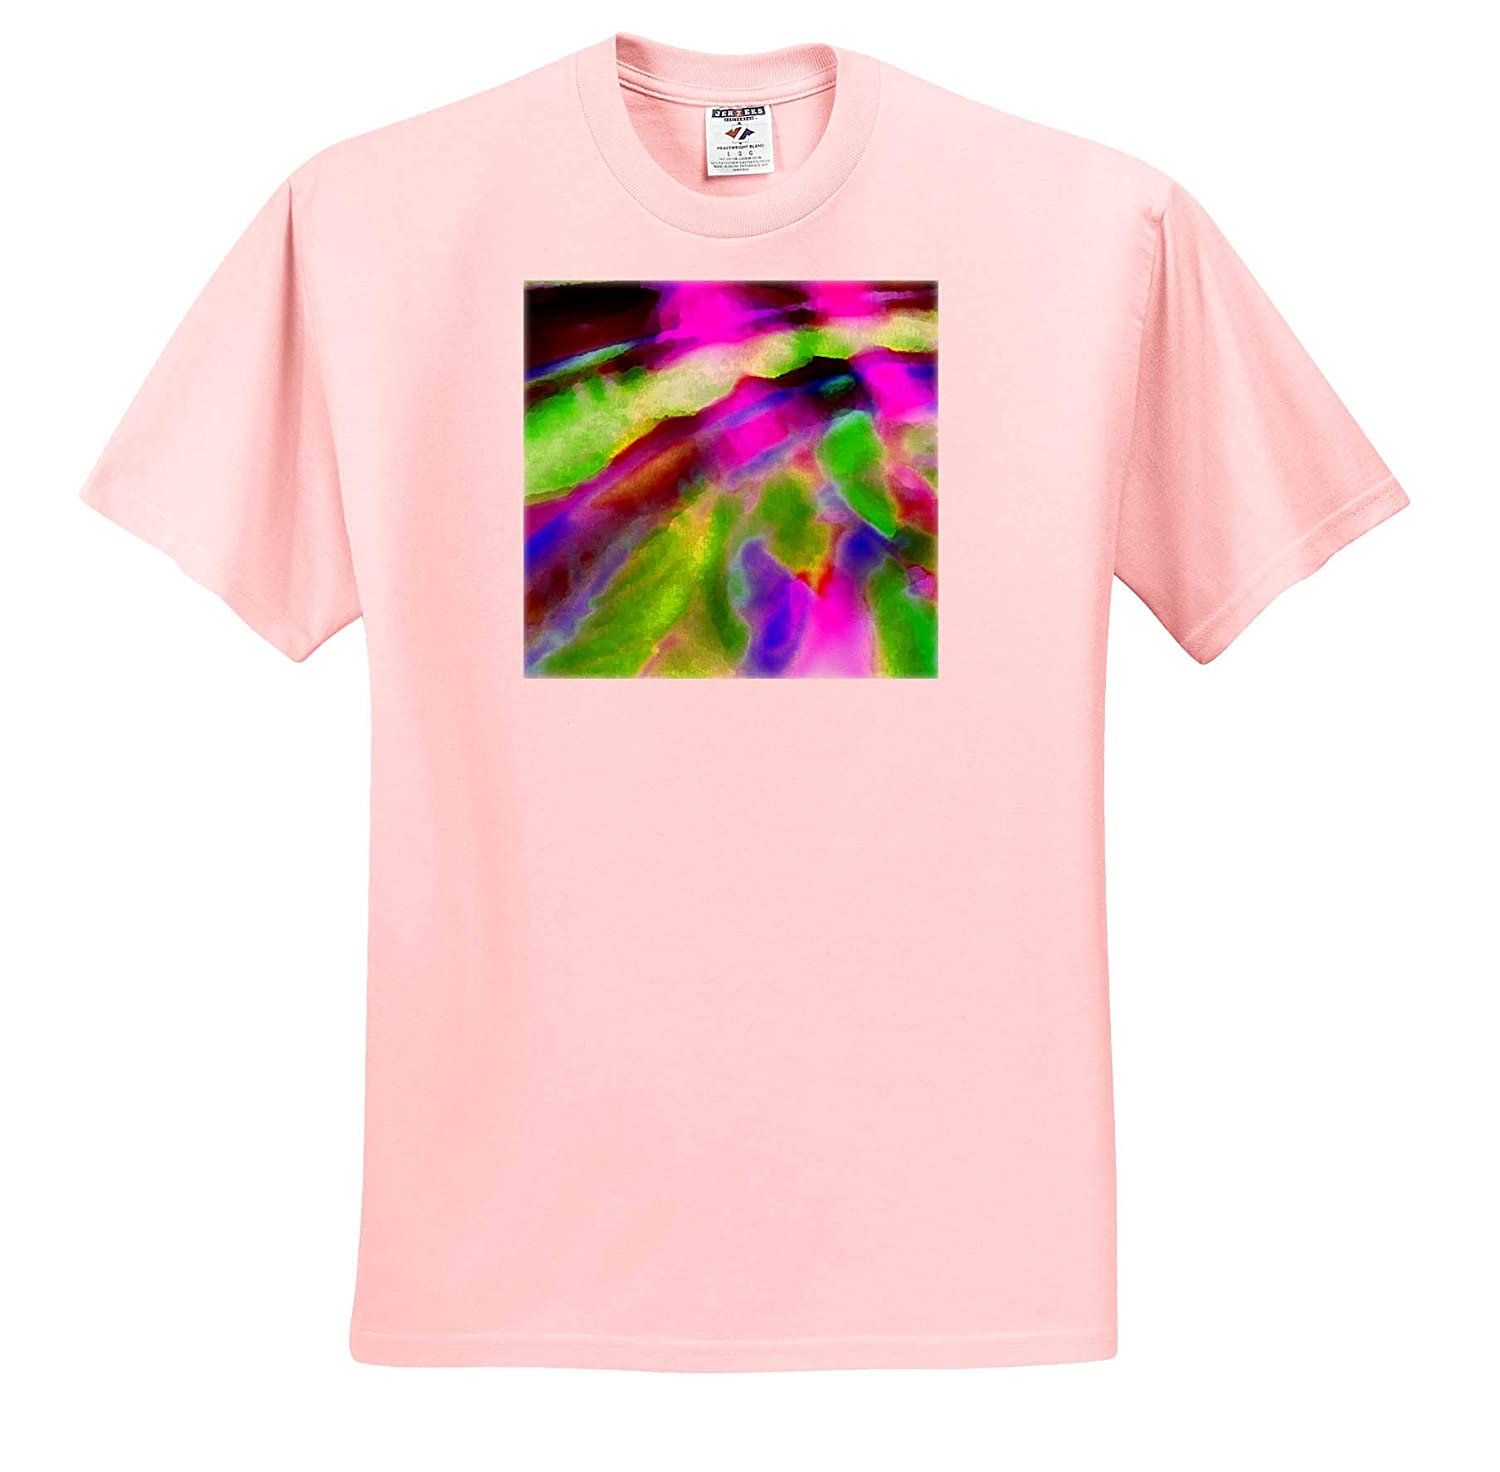 Dancing Light Art in Pink and Green with Purple ts/_317887 3dRose Jos Fauxtographee- Music Art Adult T-Shirt XL